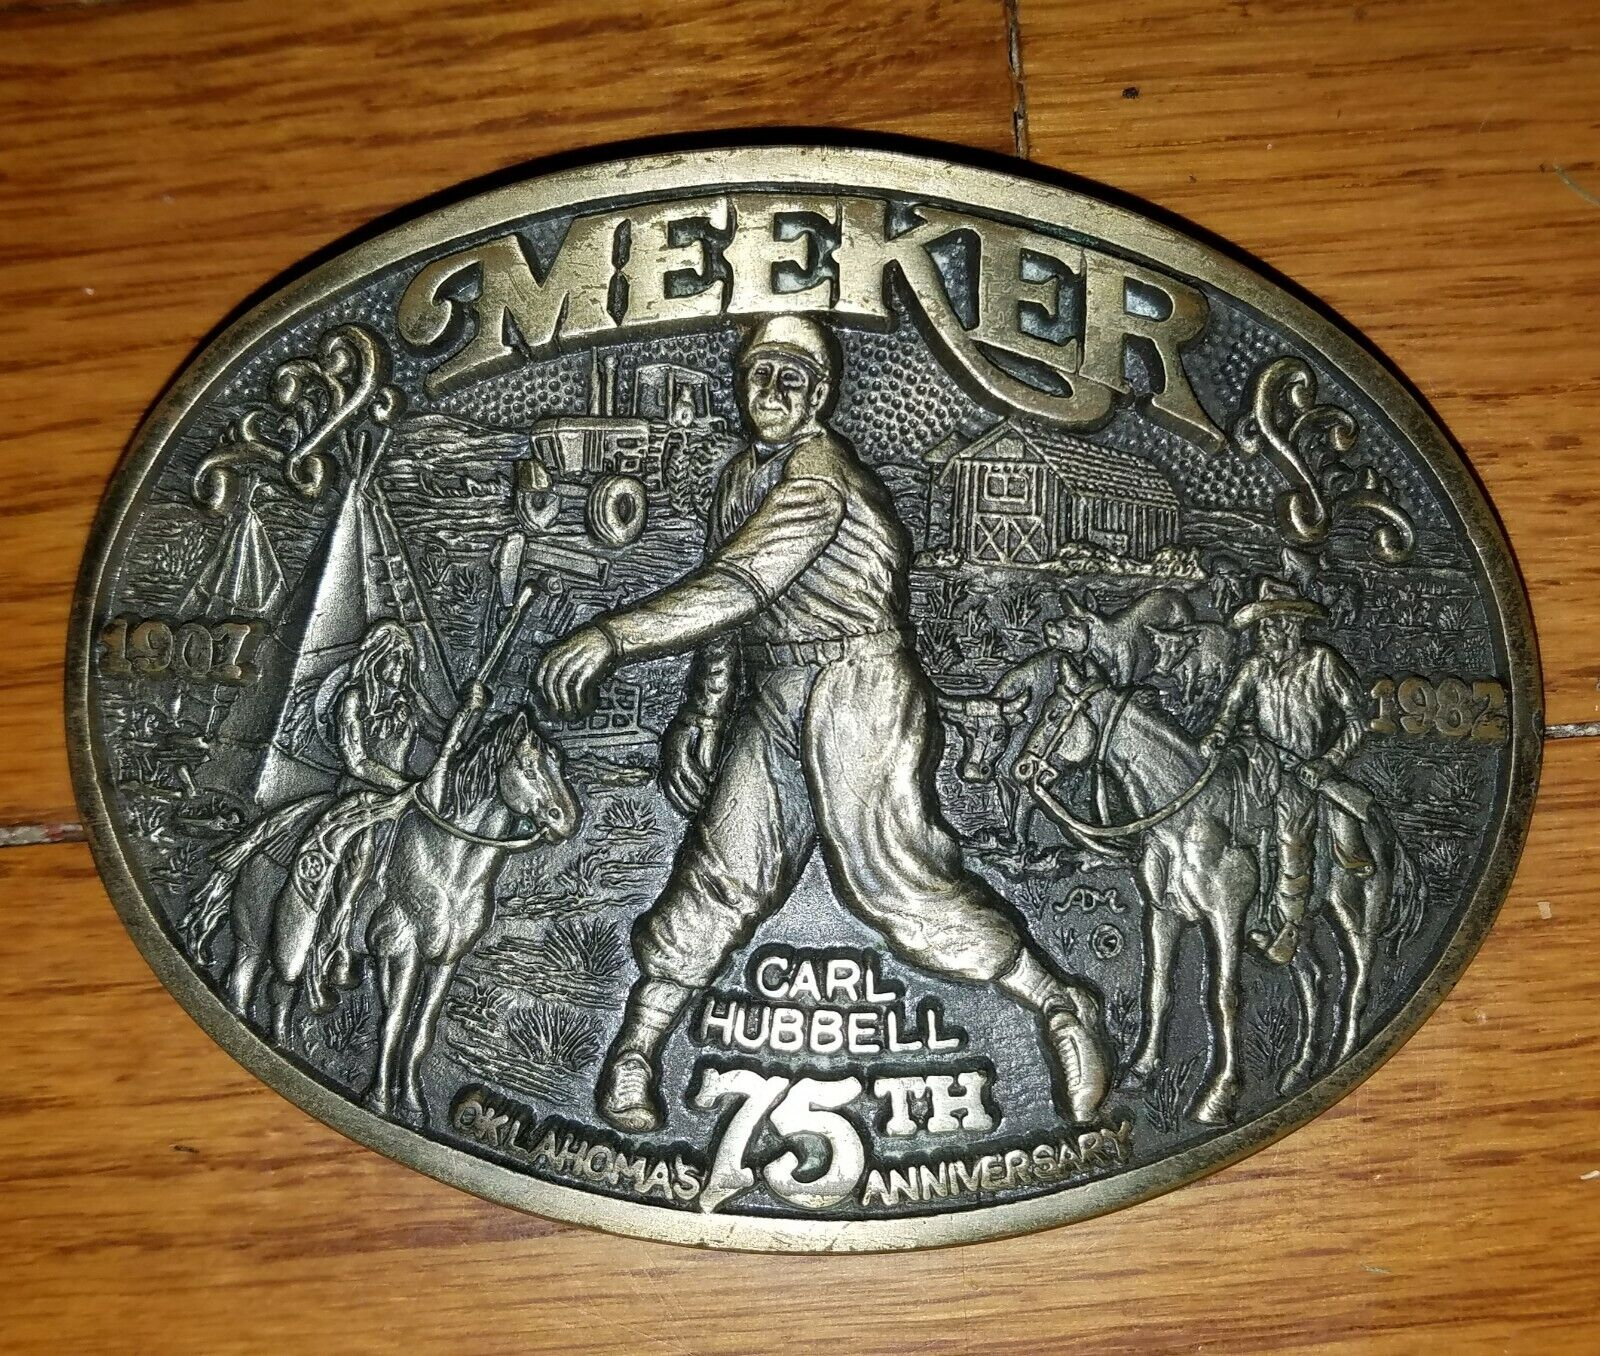 Meeker Oklahoma 75th anniversary 1982 brass Belt Buckle limited carl hubbell 480